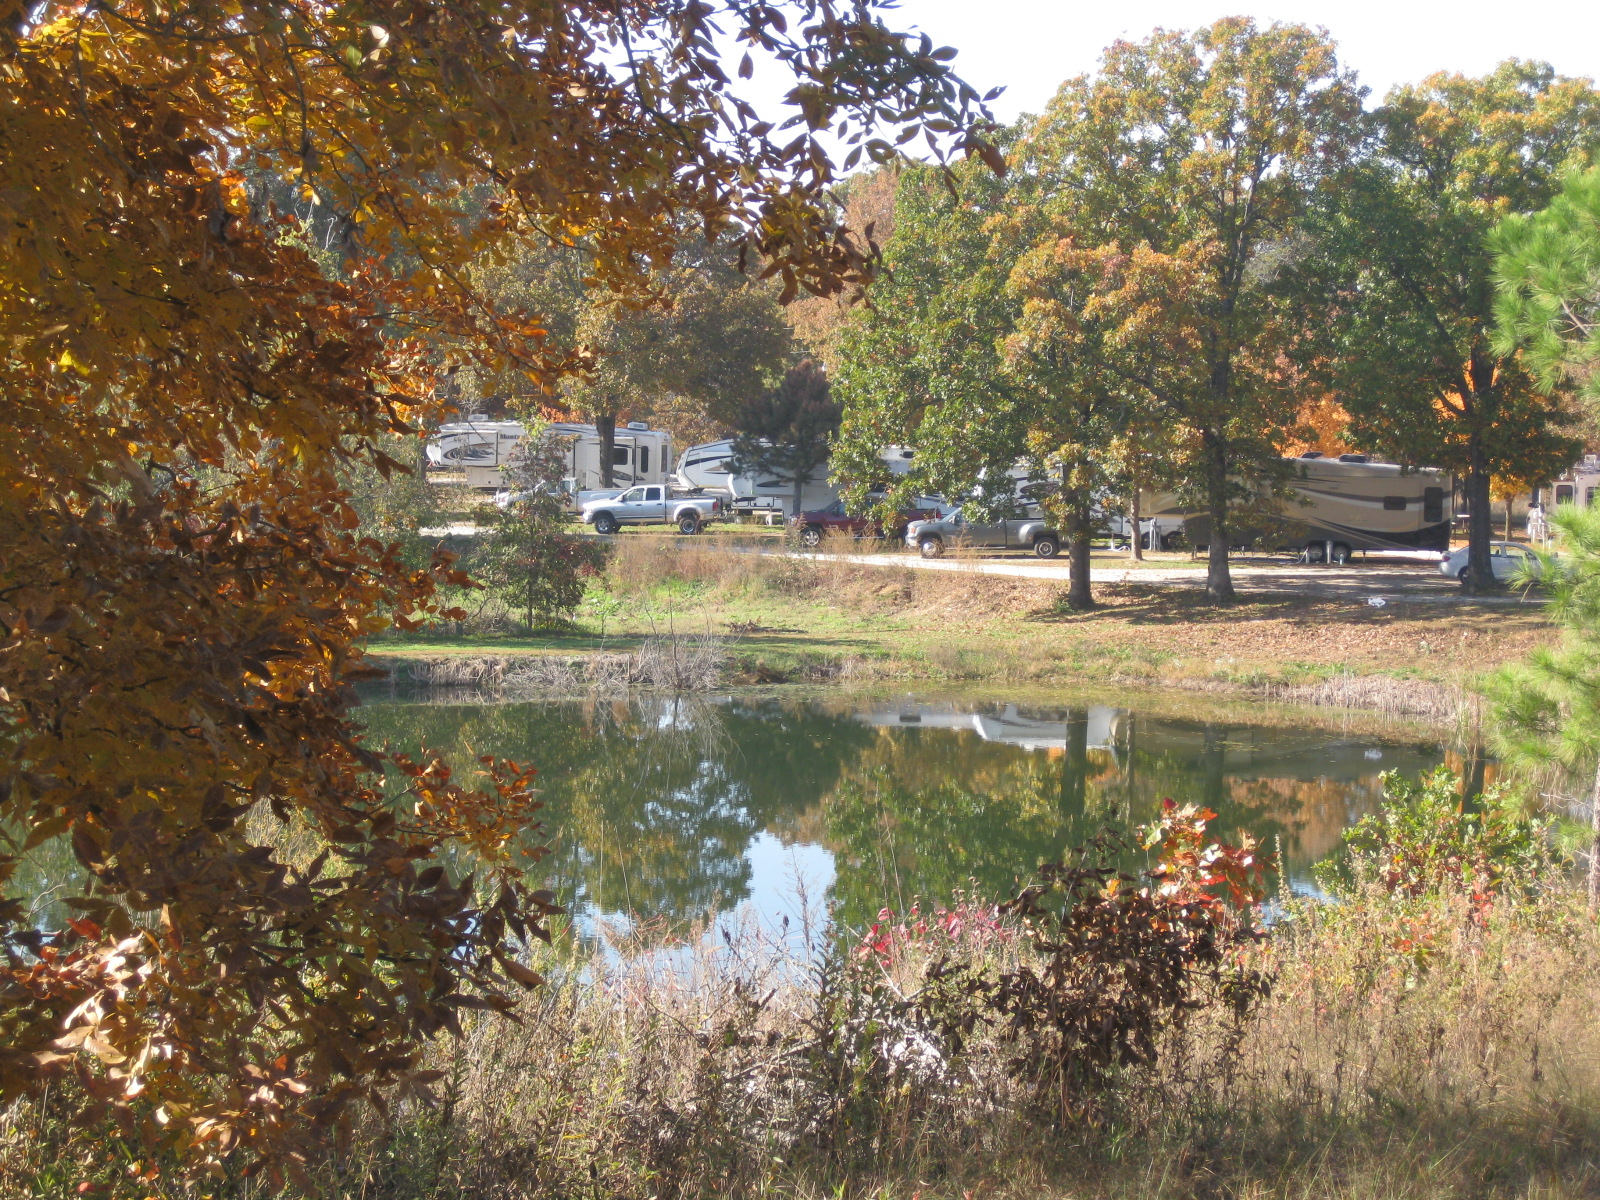 el dorado springs dating site This beautiful home on 80 acres is located just outside of el dorado springs, mo this property truly has a little bit of everything to offer.